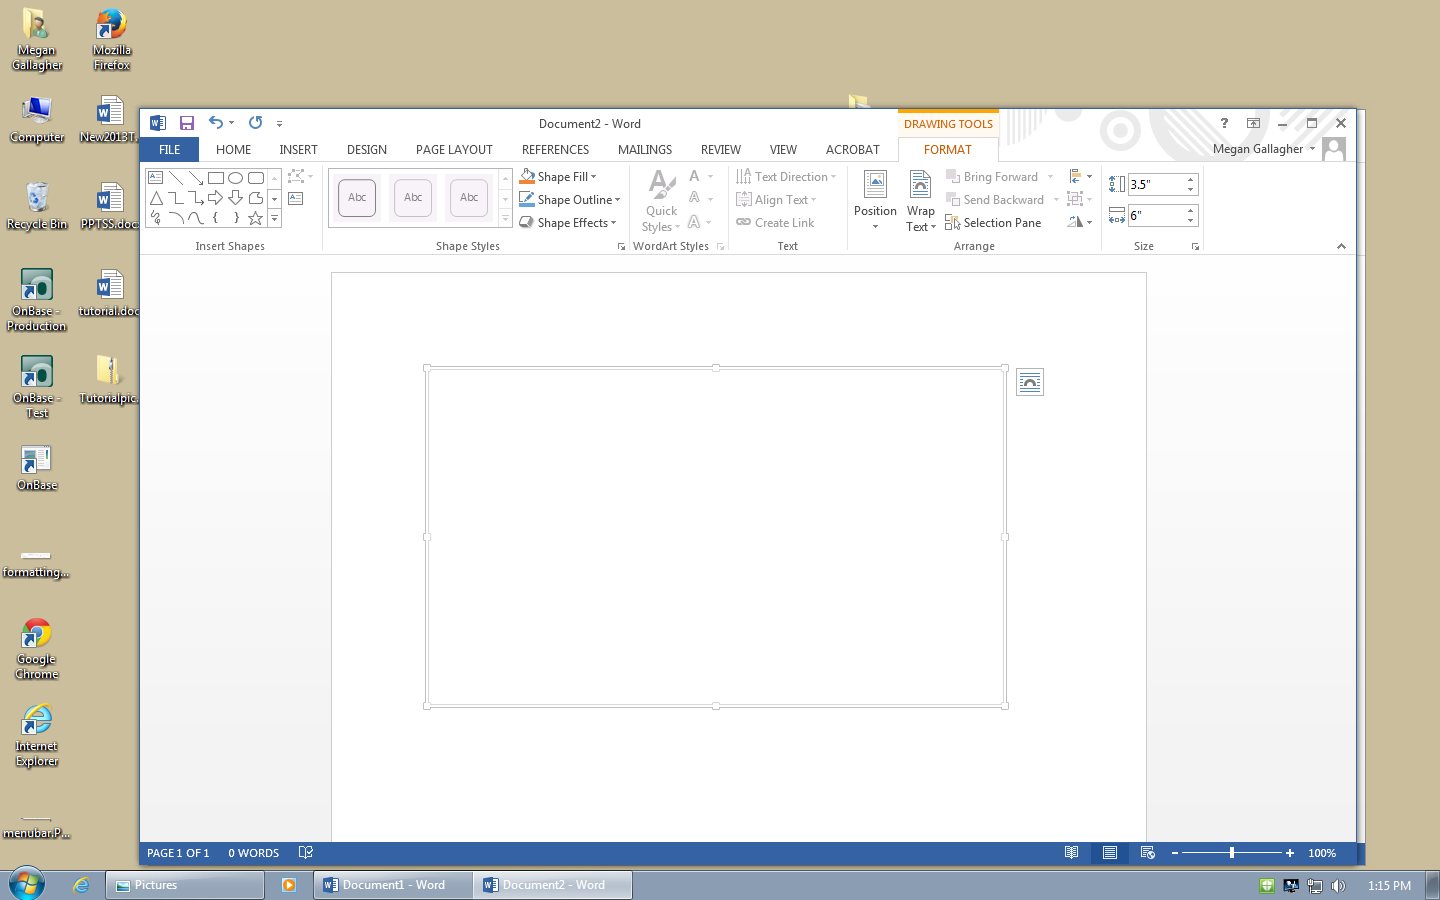 Drawing To draw in Word, go to the Insert Tab > Illustrations box > Shapes and click the New Drawing Canvas. A new toolbar will appear that is specific only to drawing tools.